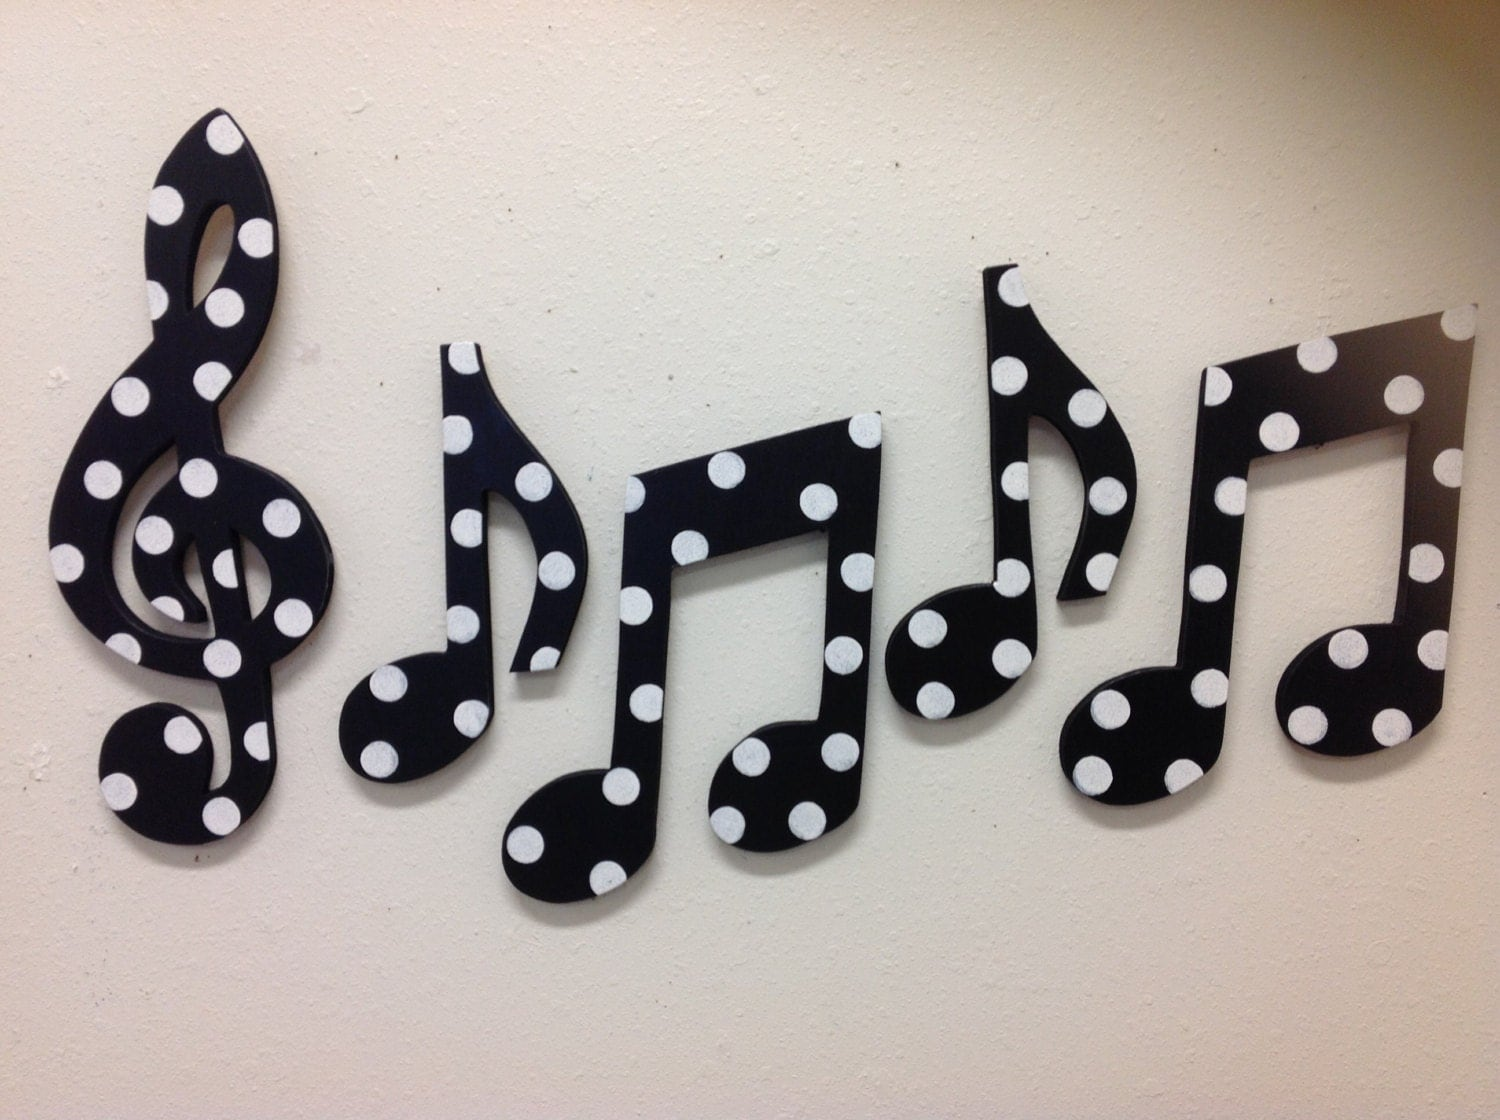 Wall Decor For Black Wall : Music notes wall decor black and white